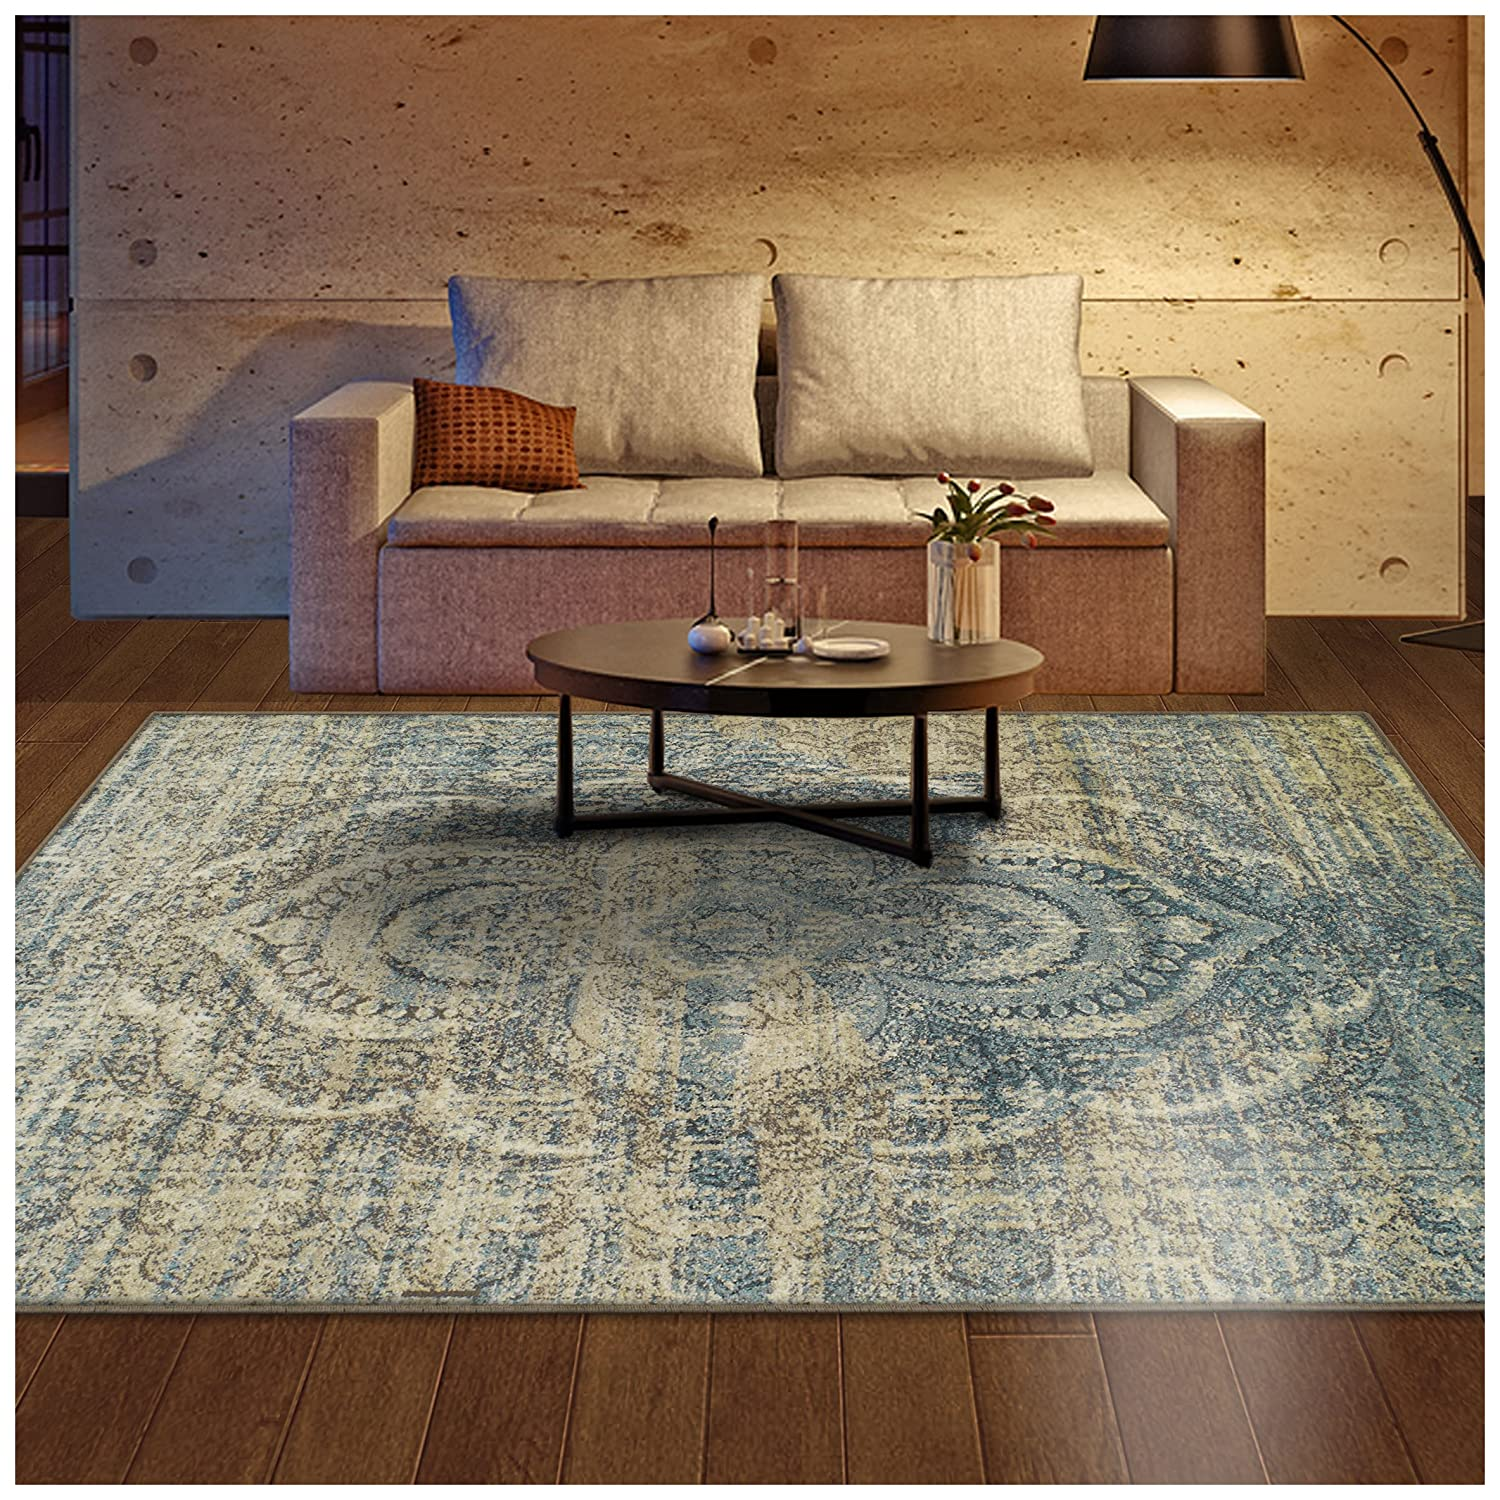 Superior Salford Collection Area Rug, 10mm Pile Height with Jute Backing, Fashionable and Affordable Rugs, Distressed Vintage Persian Rug Design - 8' x 10'